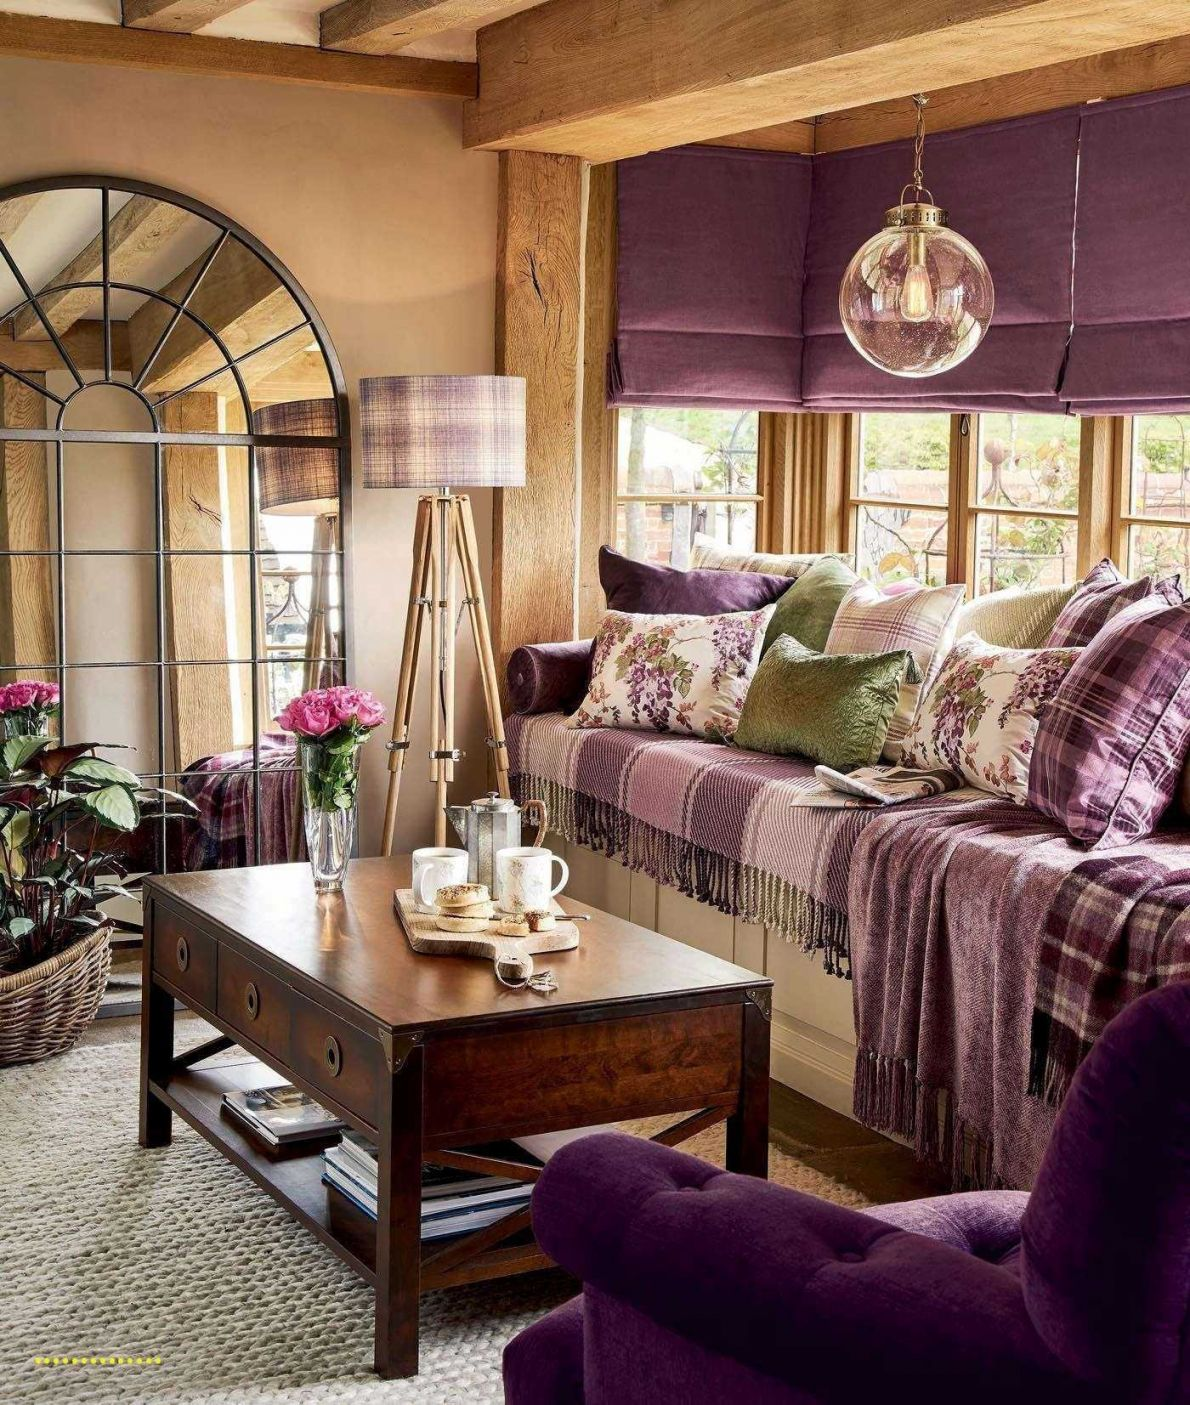 12 Insanely Beautiful Purple And Gold Living Room Ideas Gf